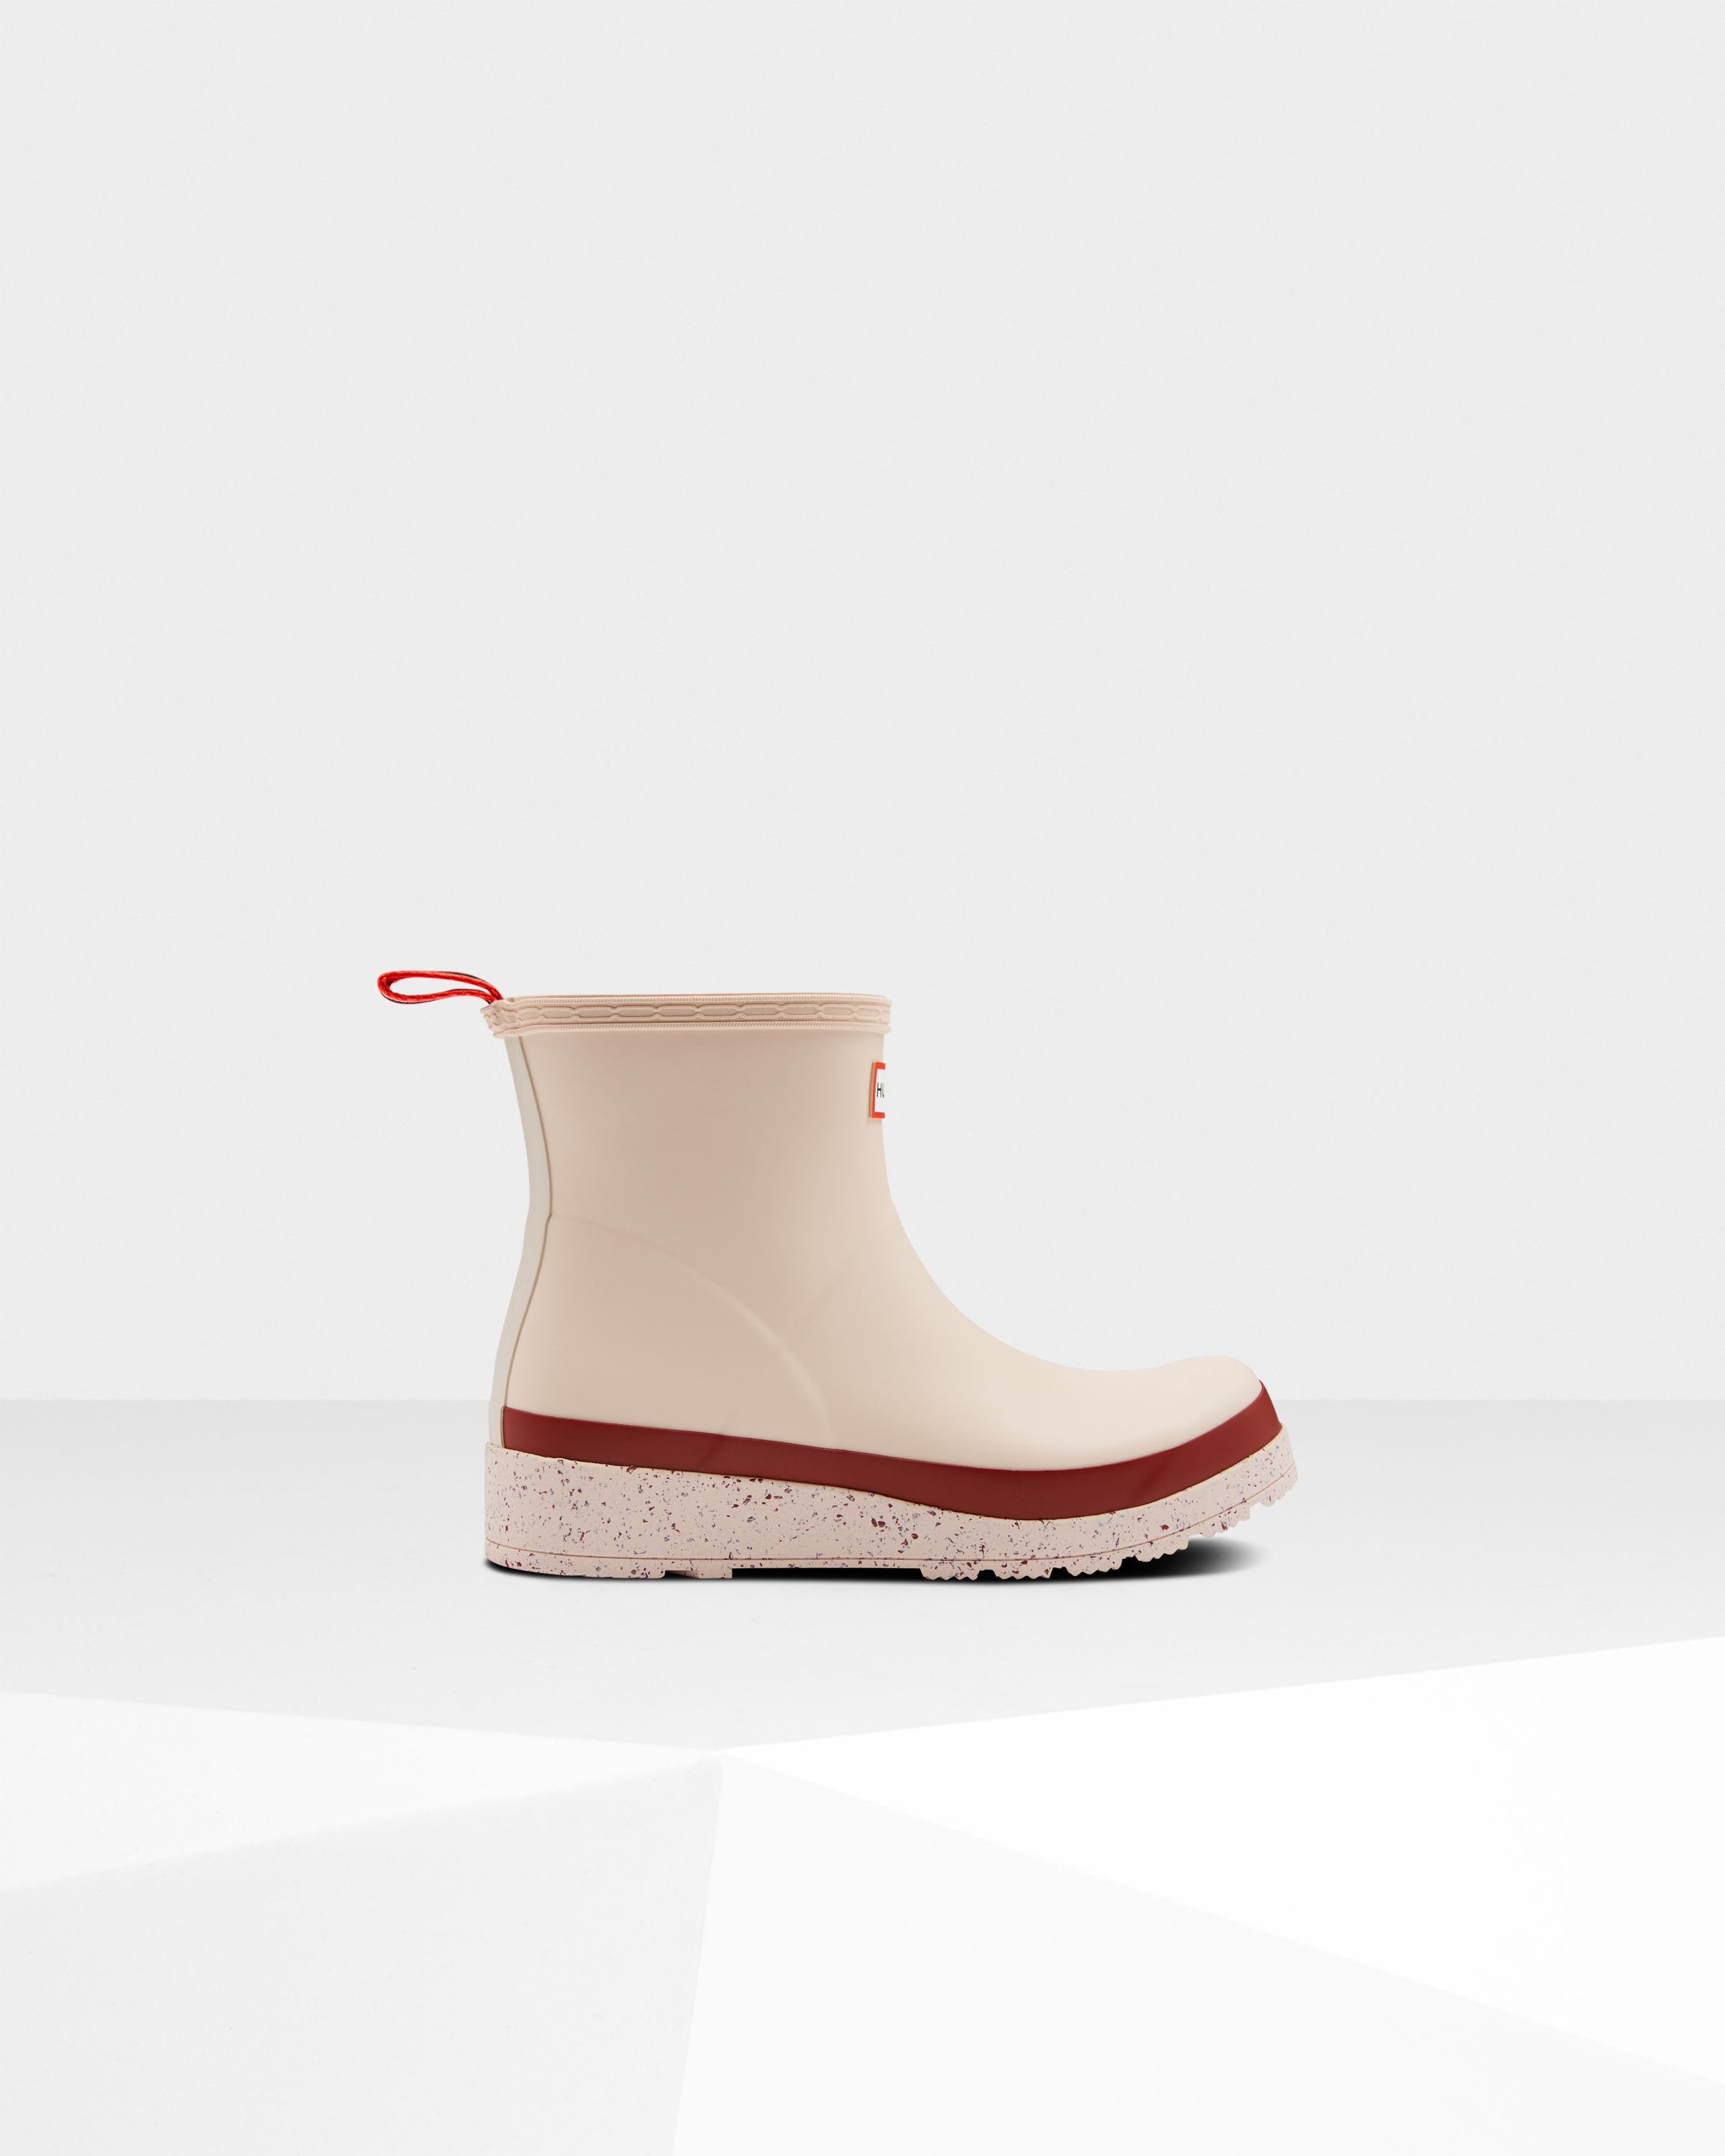 Women's Original Play Short Speckle Rain Boots: Moonstone Pink/autumn Stone Red | Official Hunter Boots Store